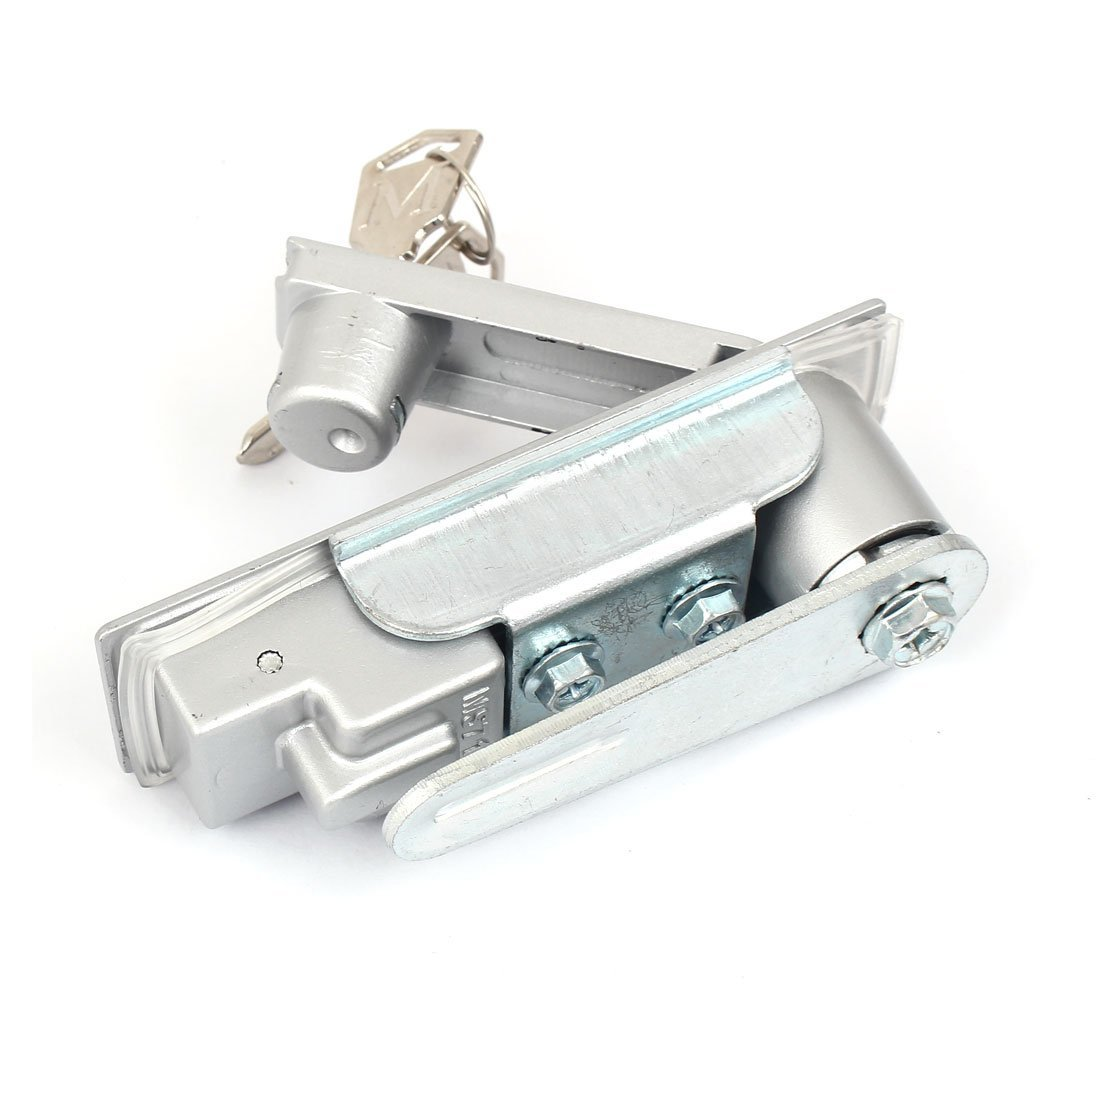 DealMux 4.3 Length Silver Tone Metal Panel Lock for Iron Distribution Cabinet